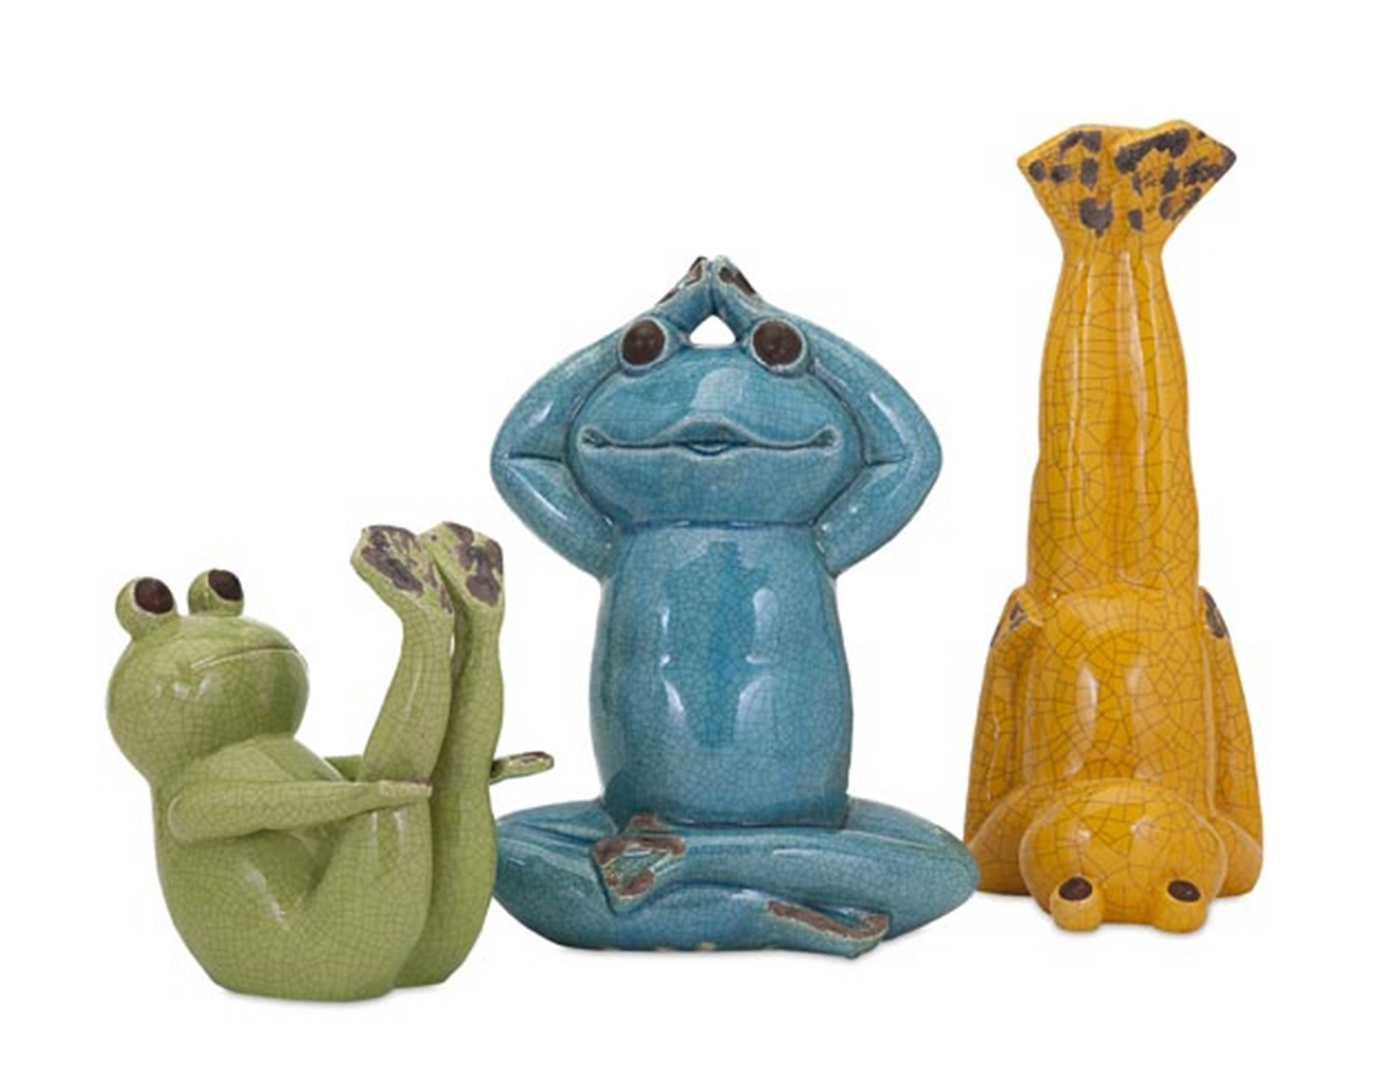 "Set of 3 Yoga Frogs 8/12/14""H"